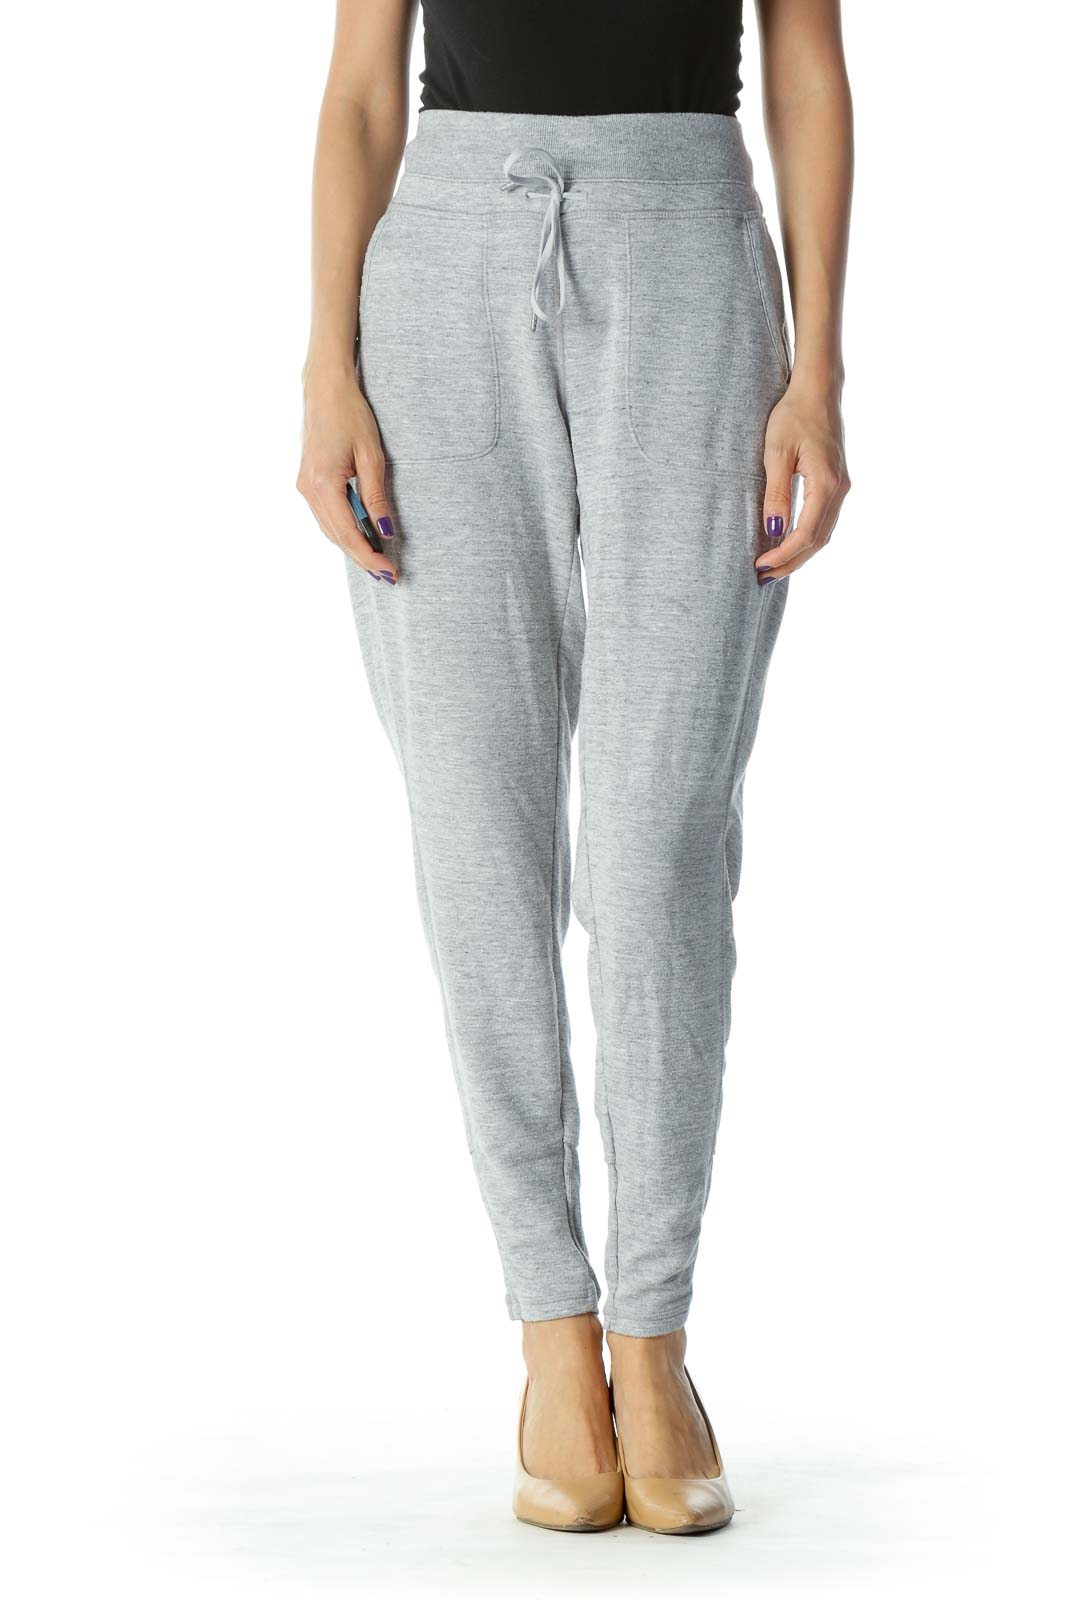 Grey Tie Front Sweat Sport Pant